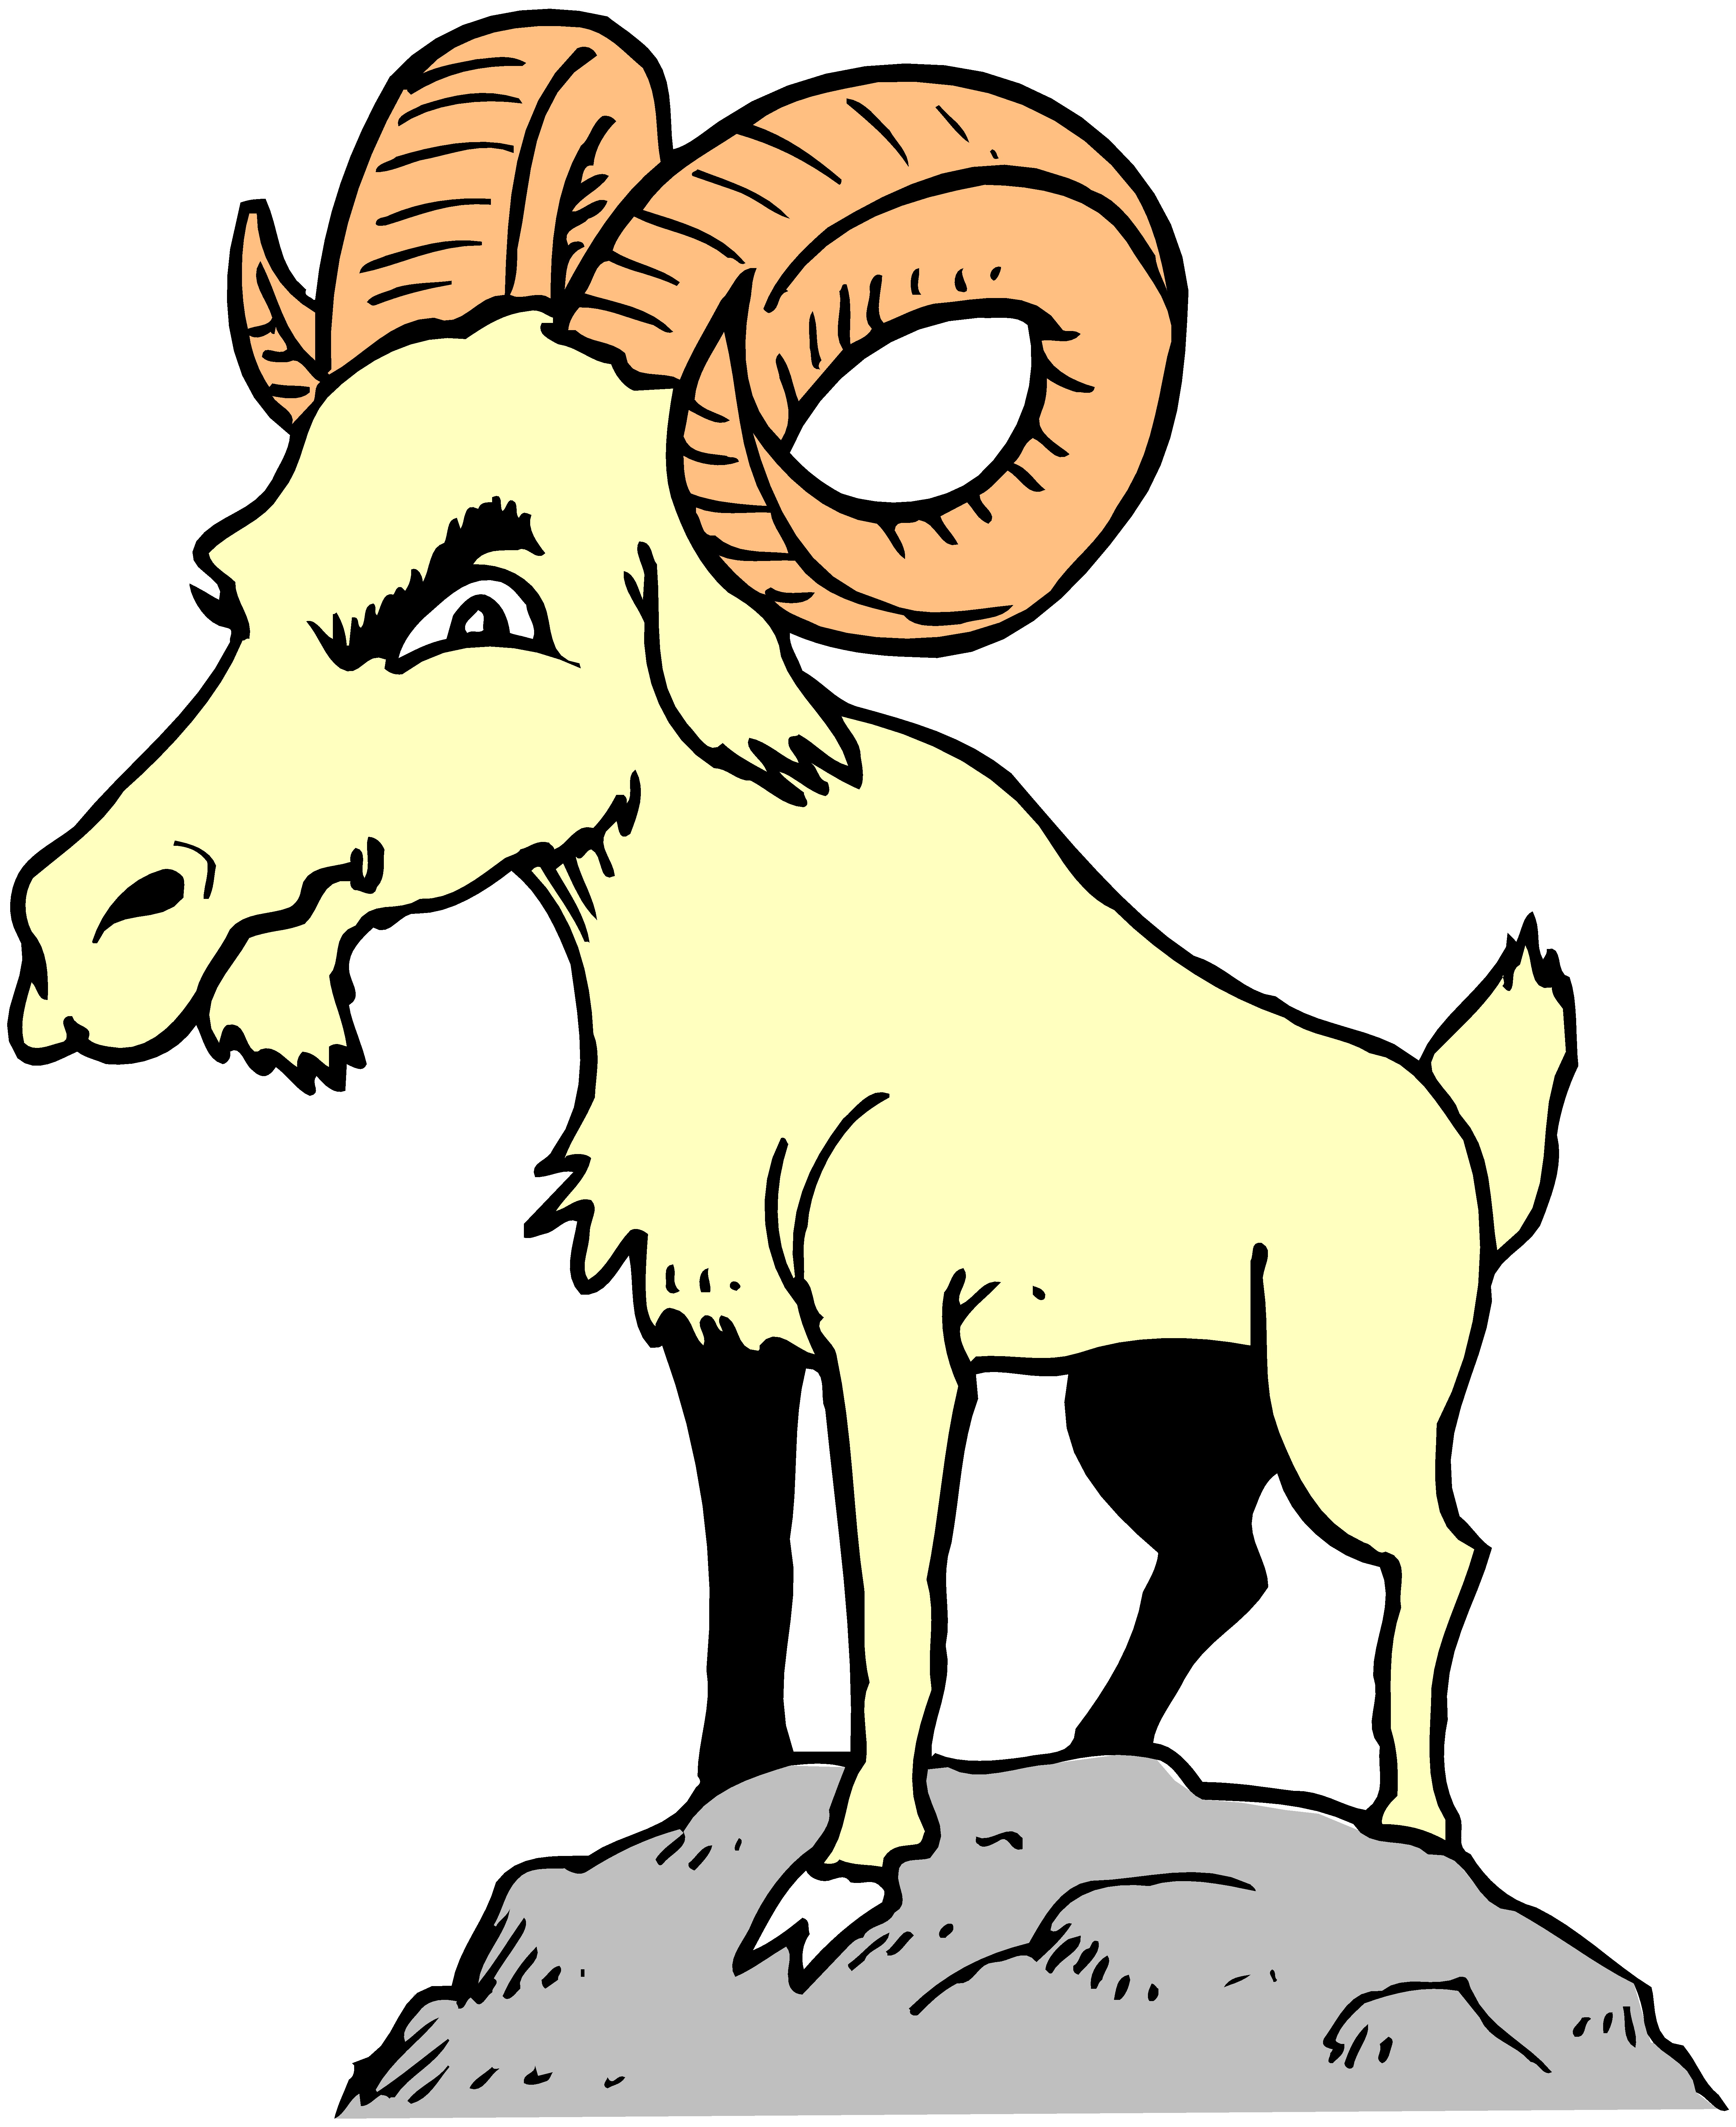 Clipart billy goat image free library Billy Goat Clipart | Free download best Billy Goat Clipart on ... image free library